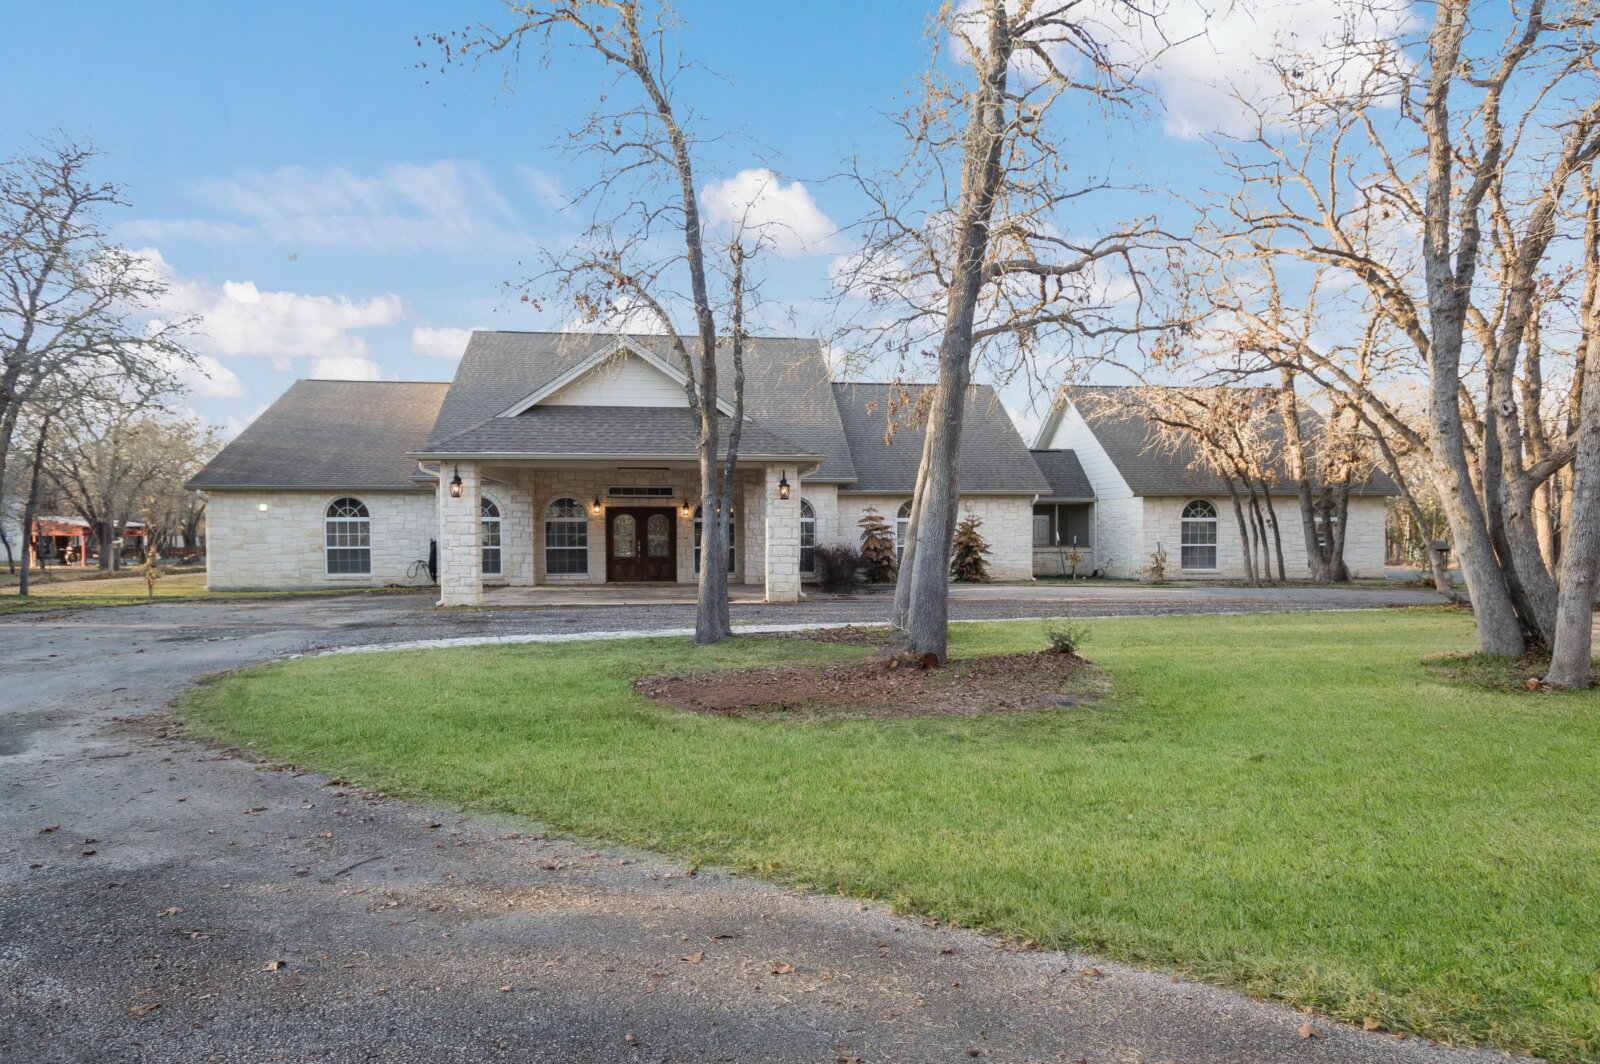 Floresville TX home for sale -- sold